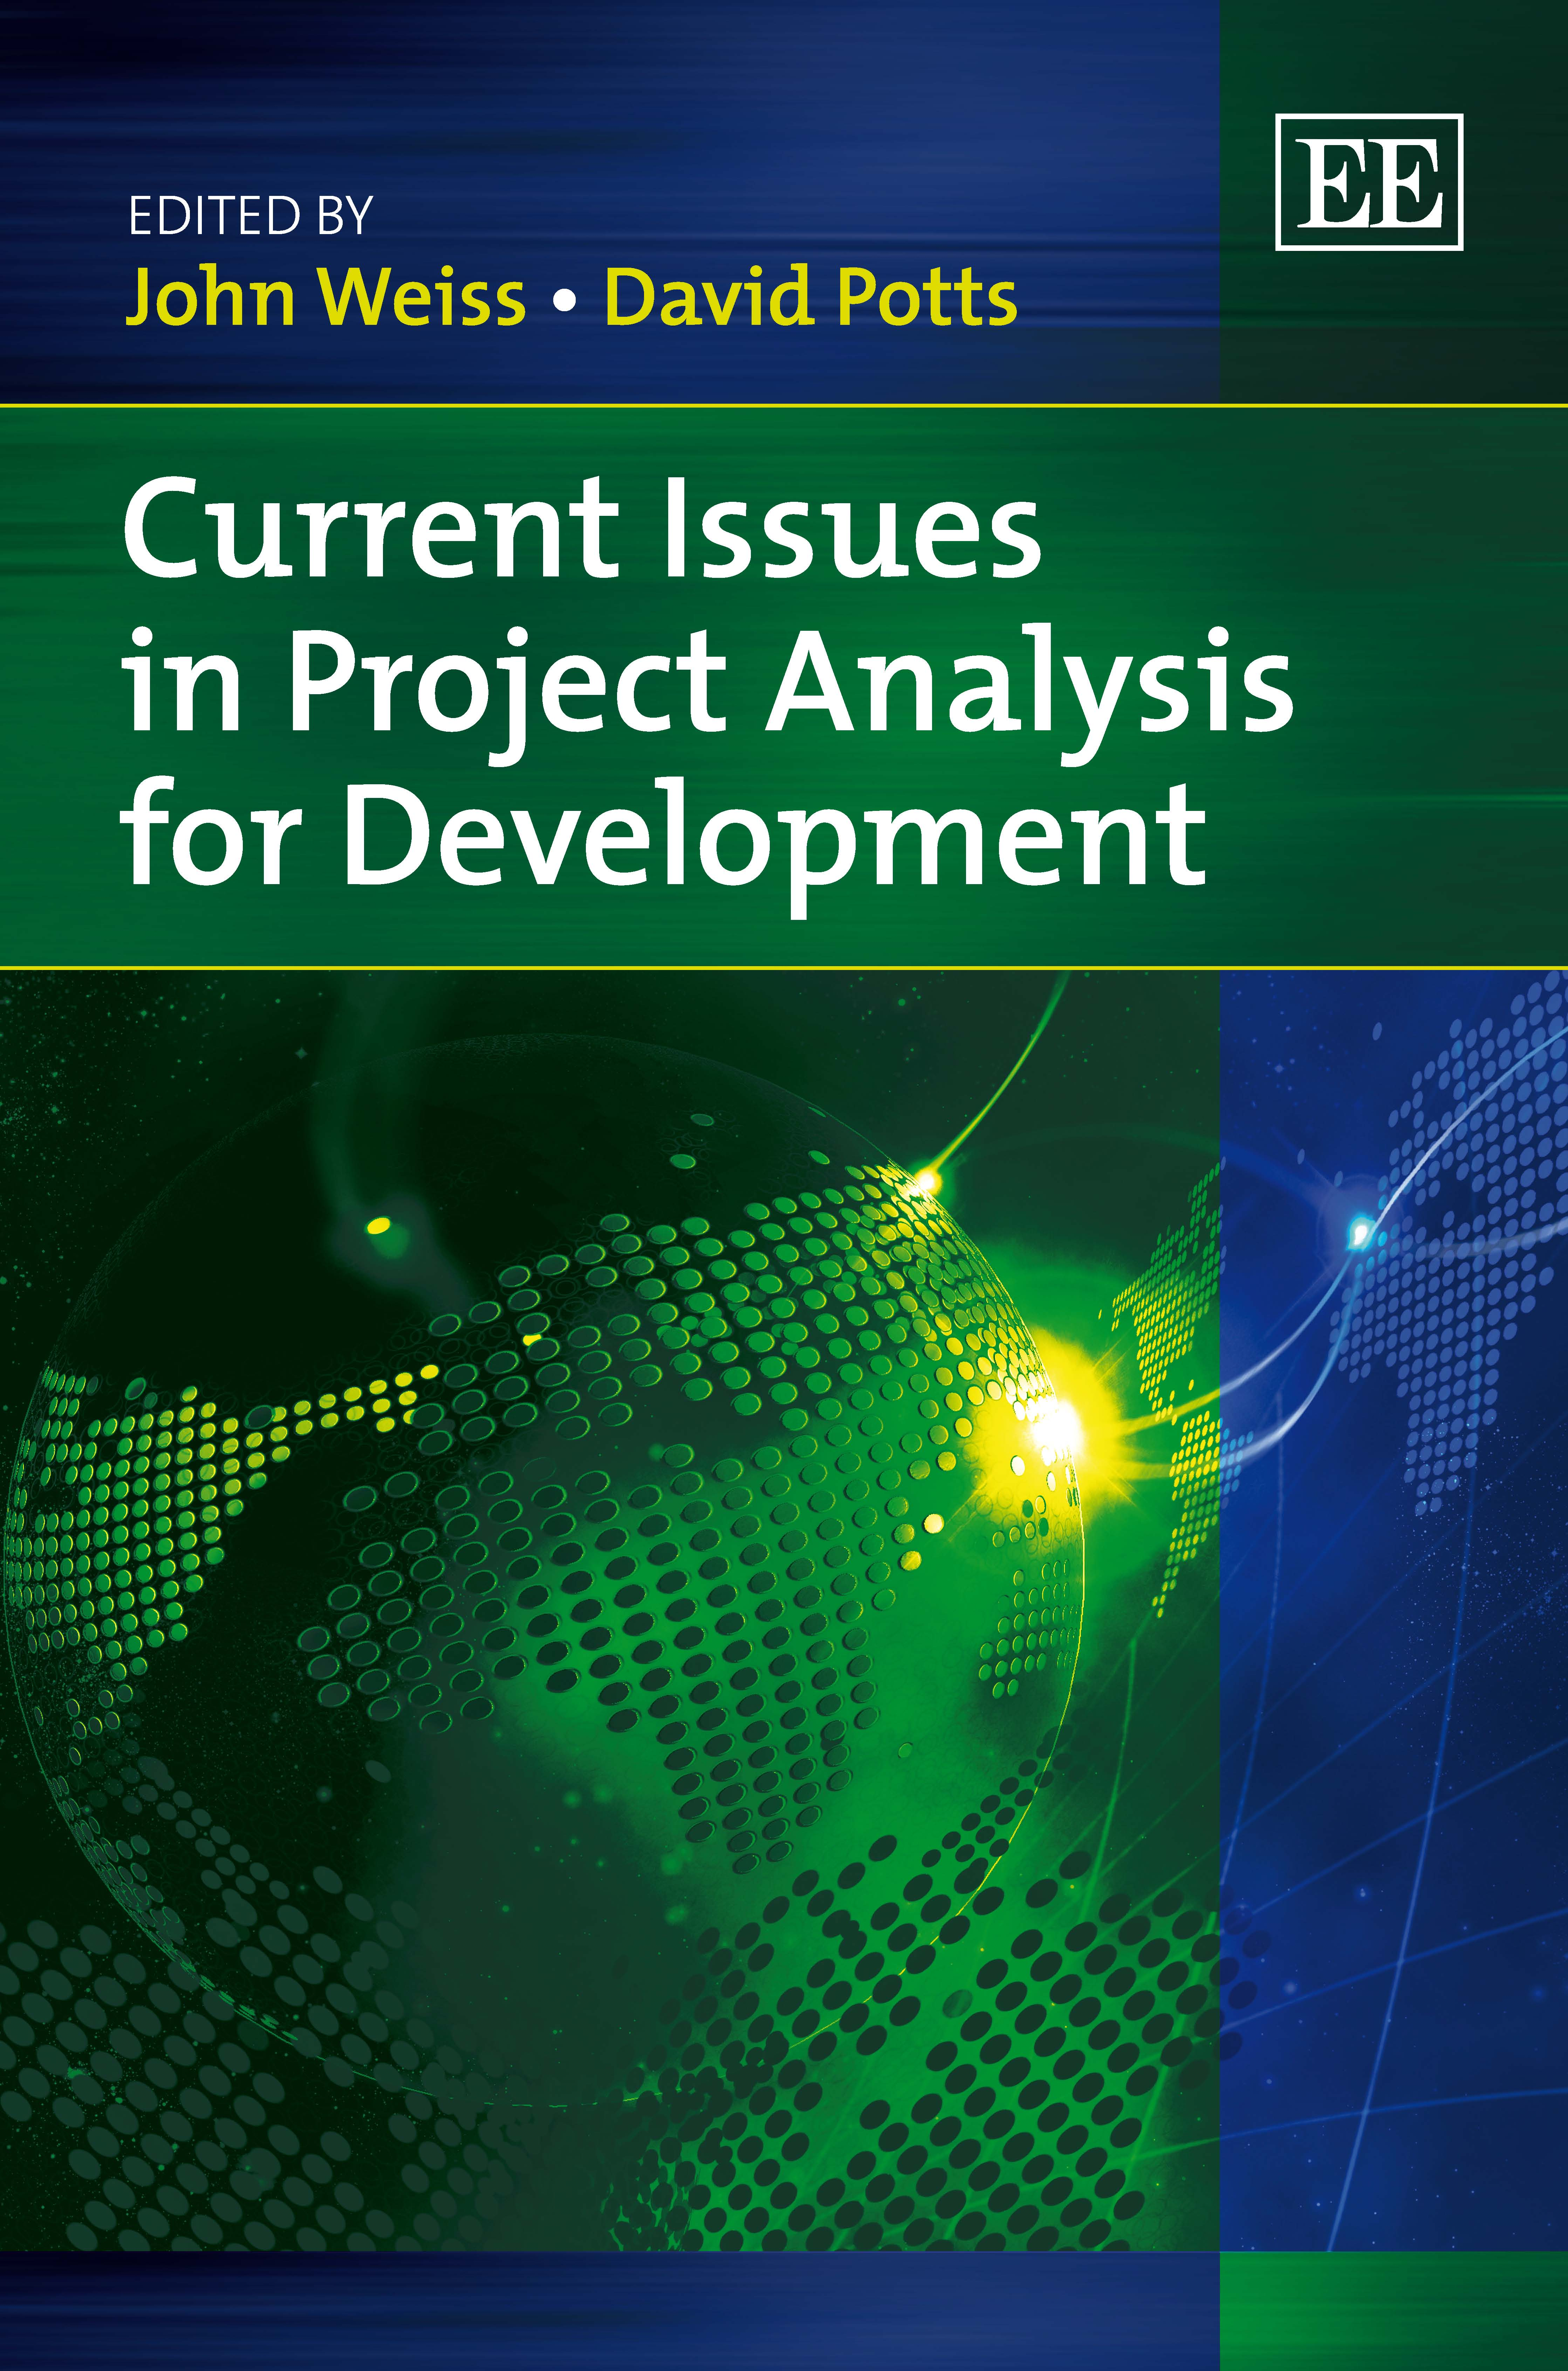 Current Issues in Project Analysis for Development